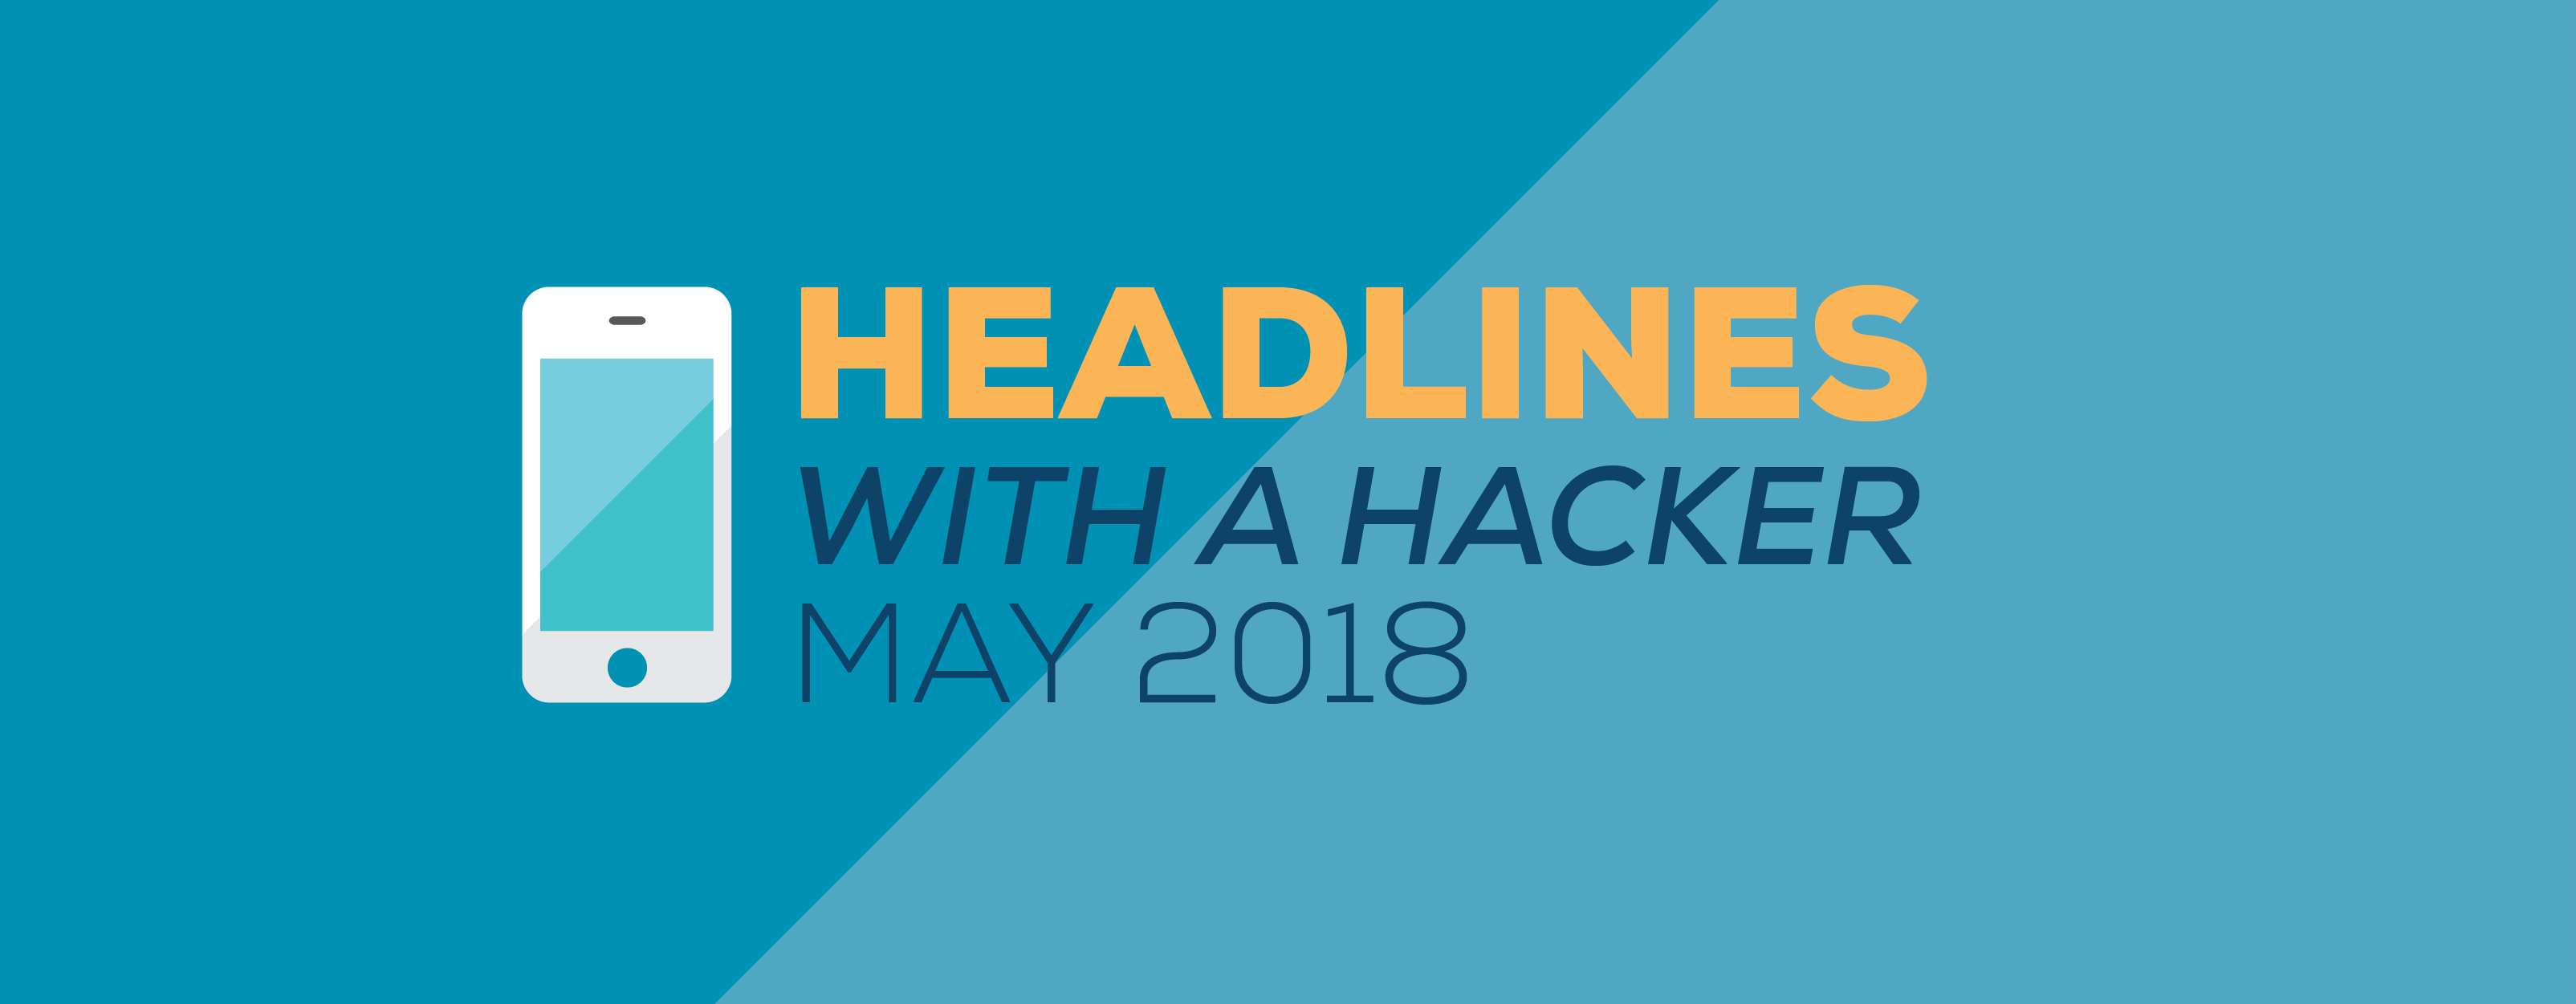 Ep.51_Headlines with a Hacker May-04